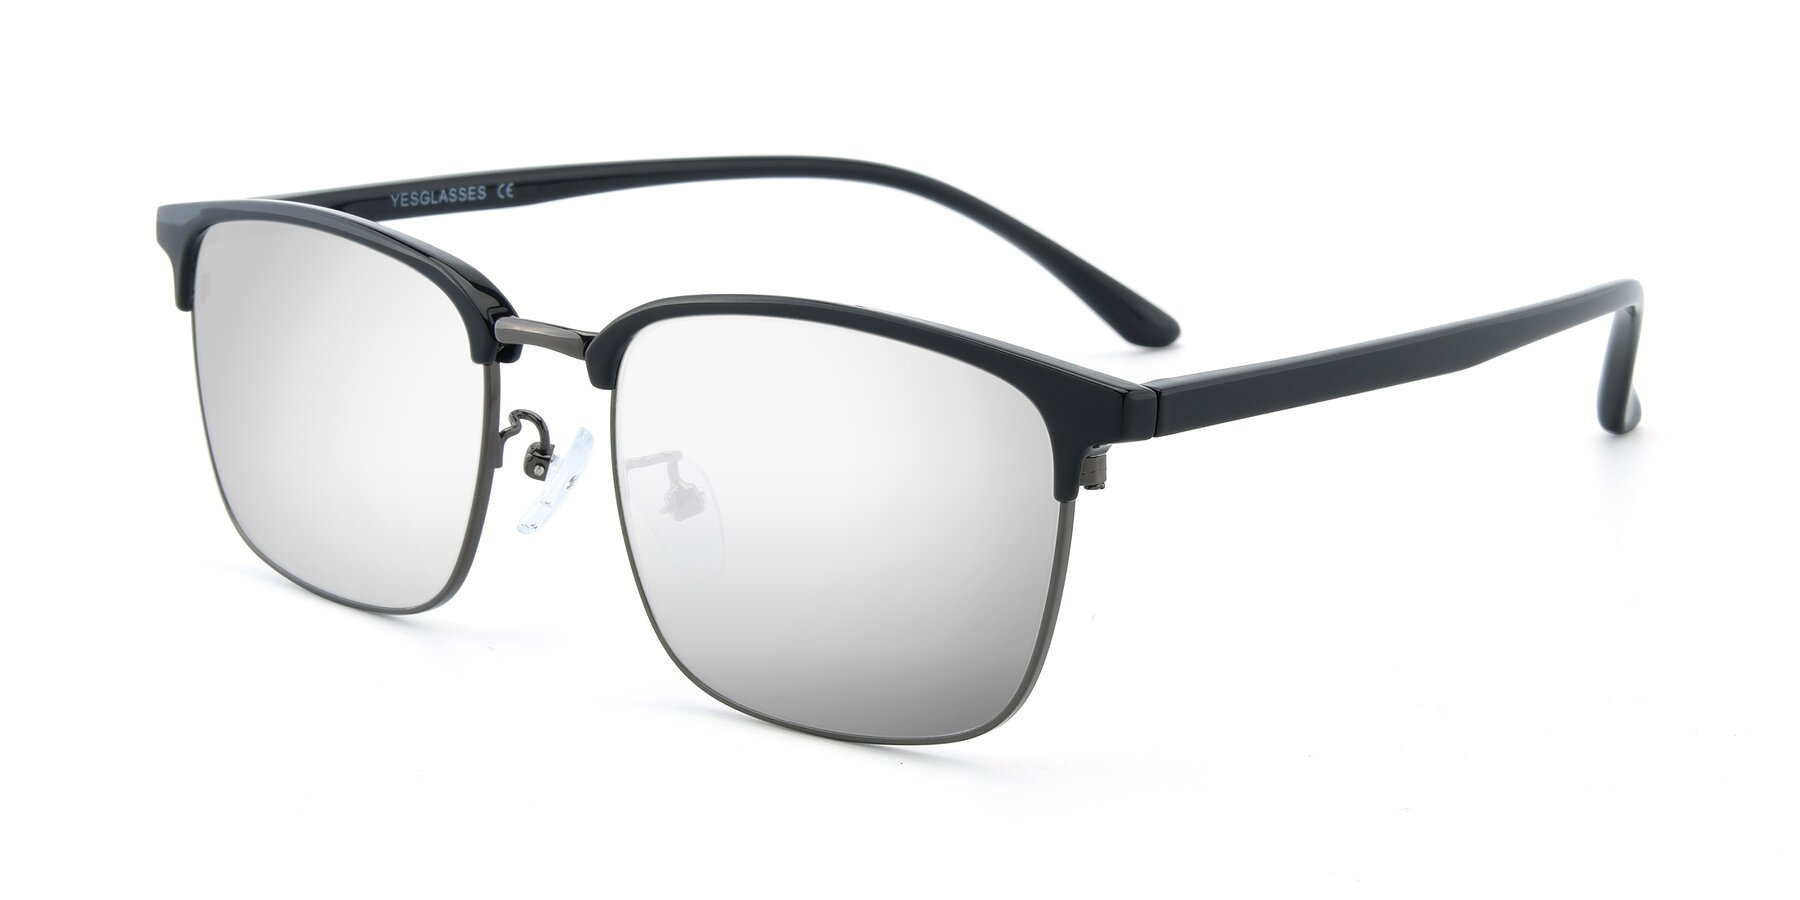 Angle of 00340 in Black-Gun with Silver Mirrored Lenses